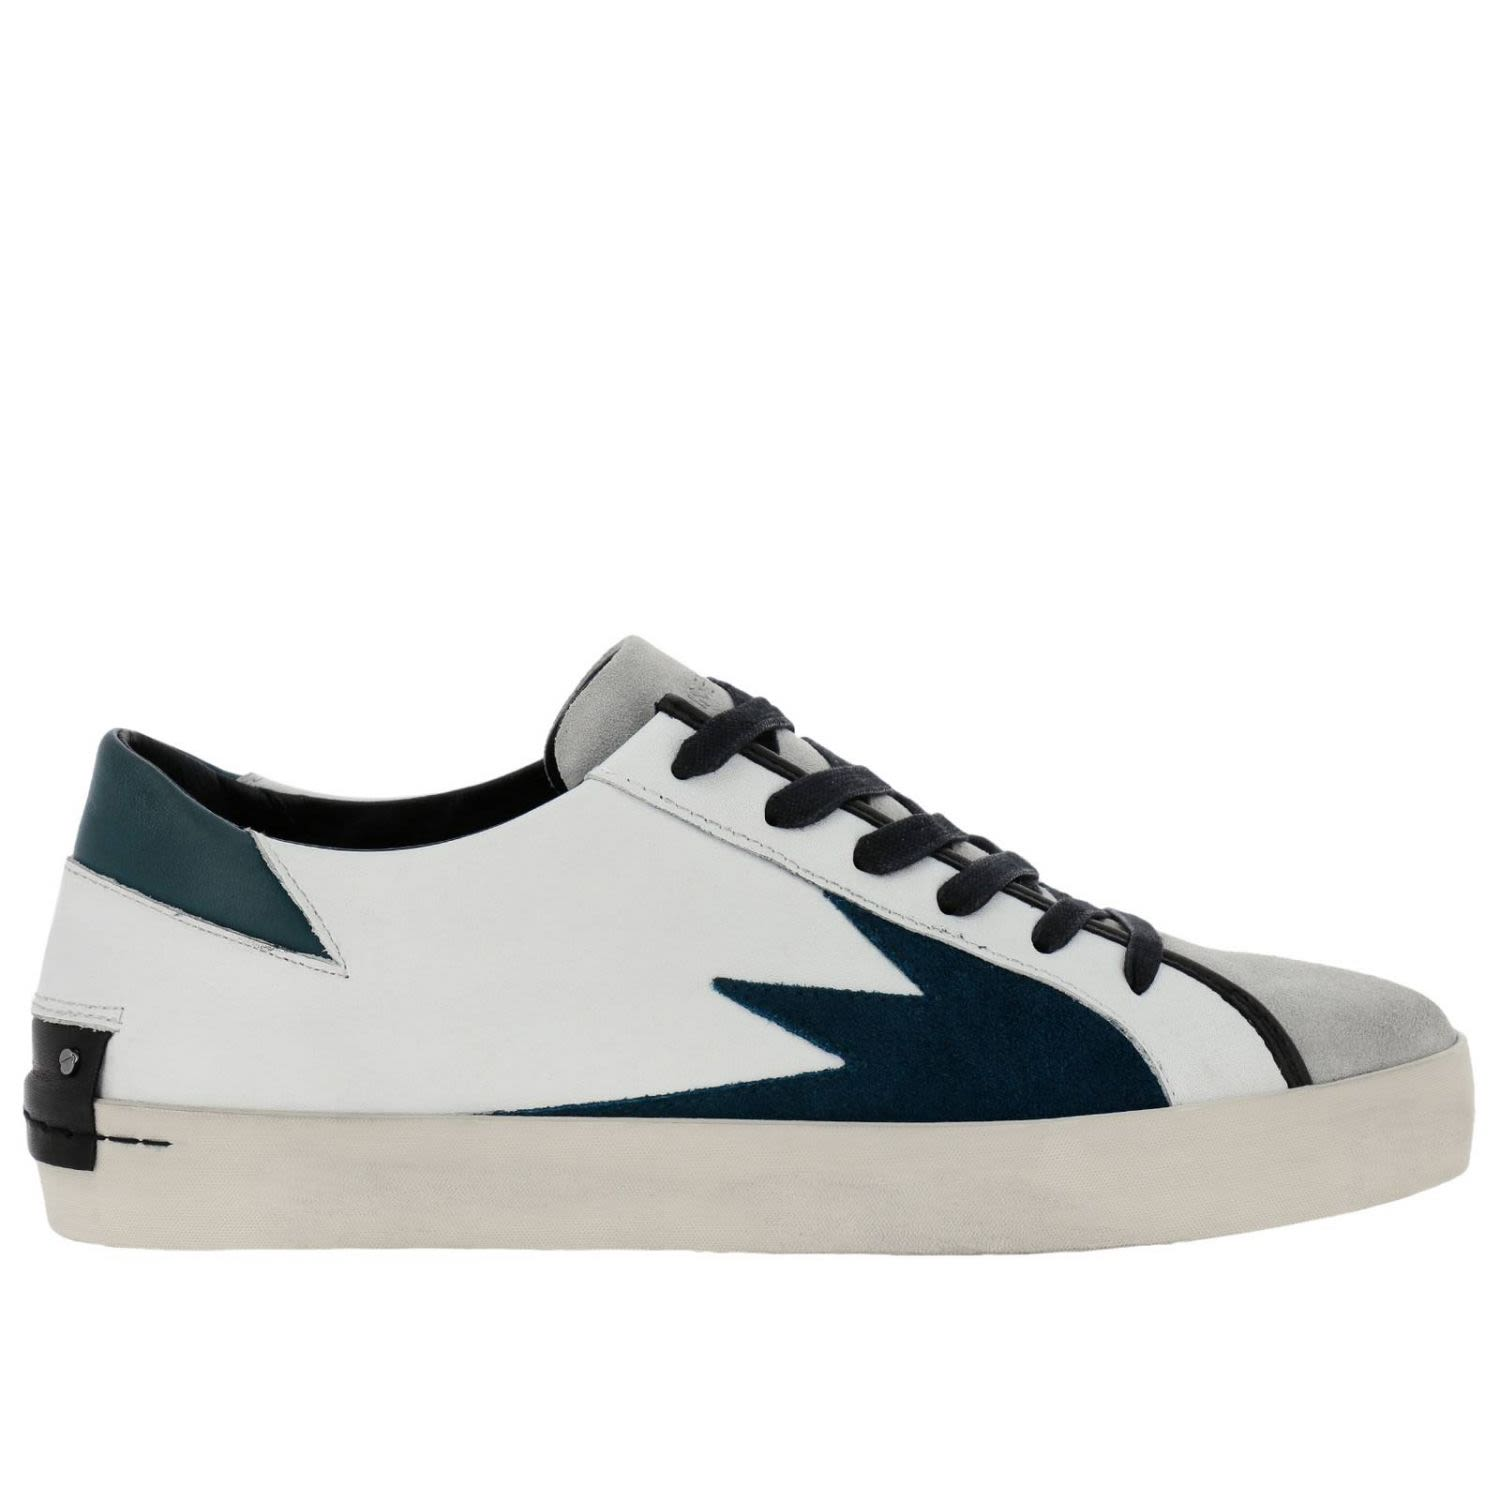 CRIME LONDON Crime London Sneakers Shoes Men Crime London in White